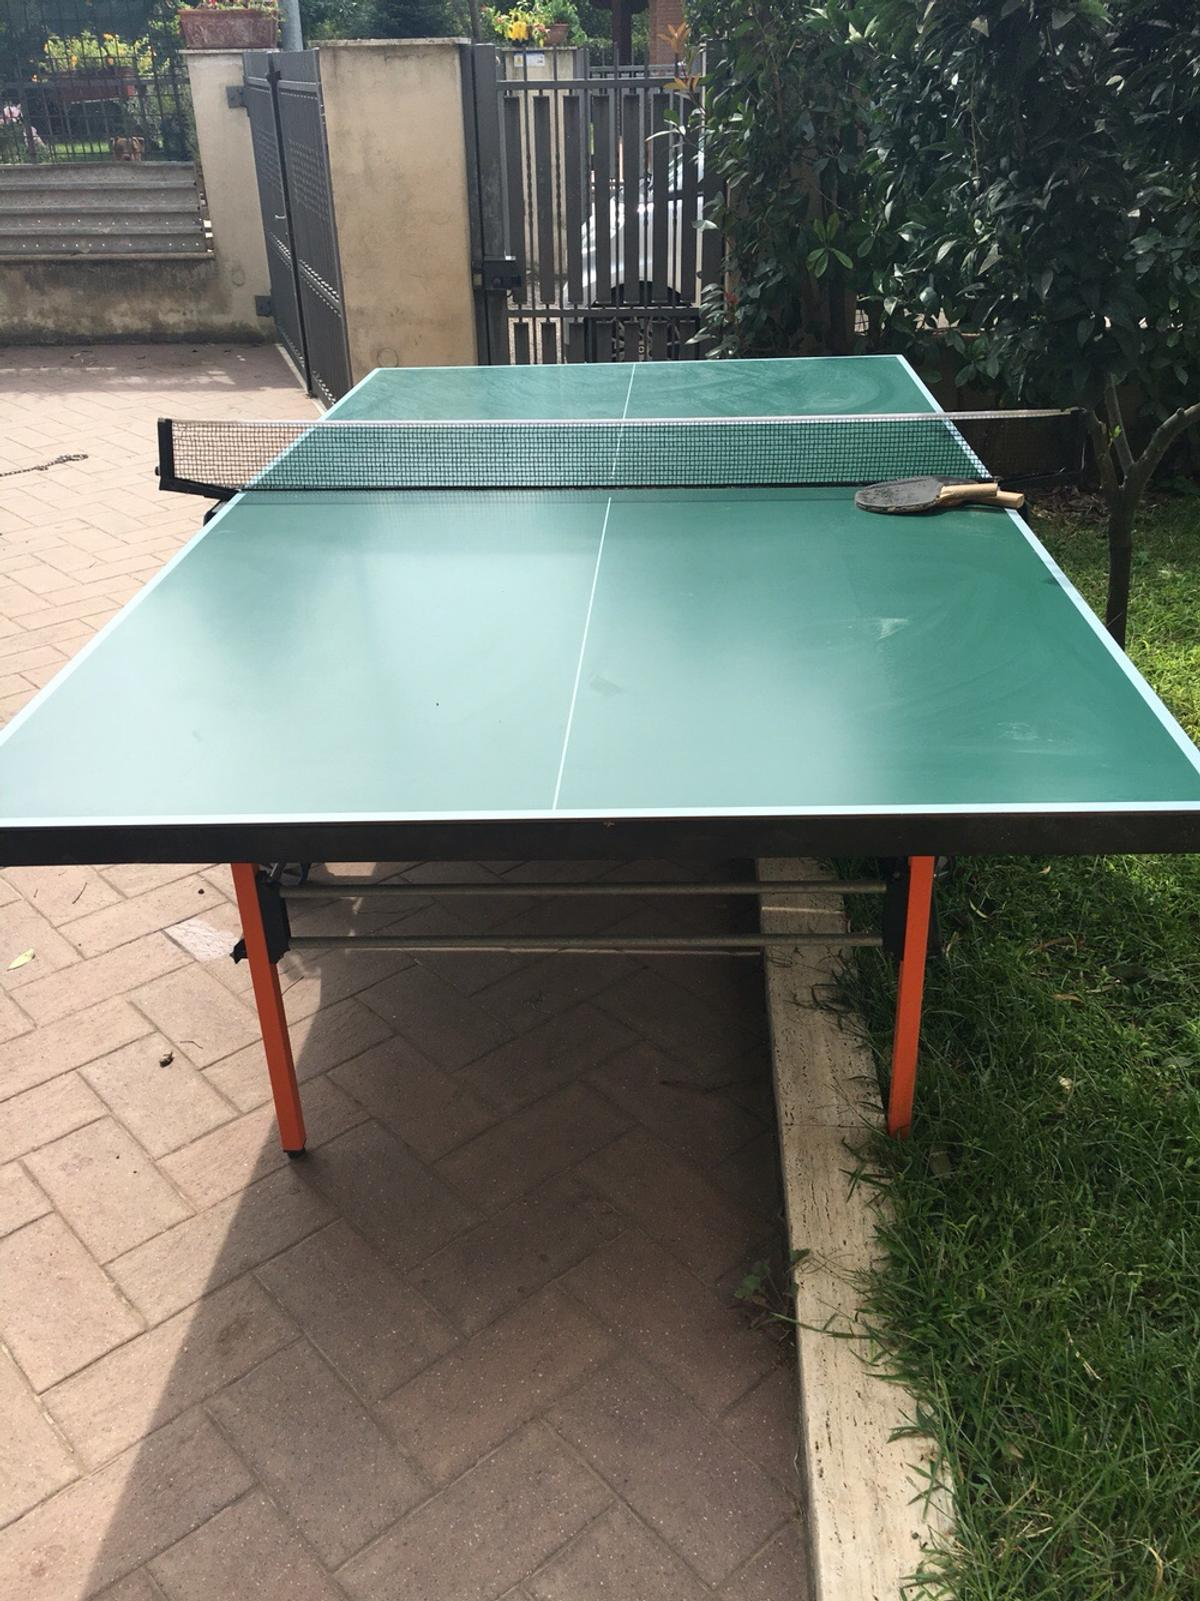 Ping Pong Tecno Pro 472 In 04026 Minturno For 40000 For